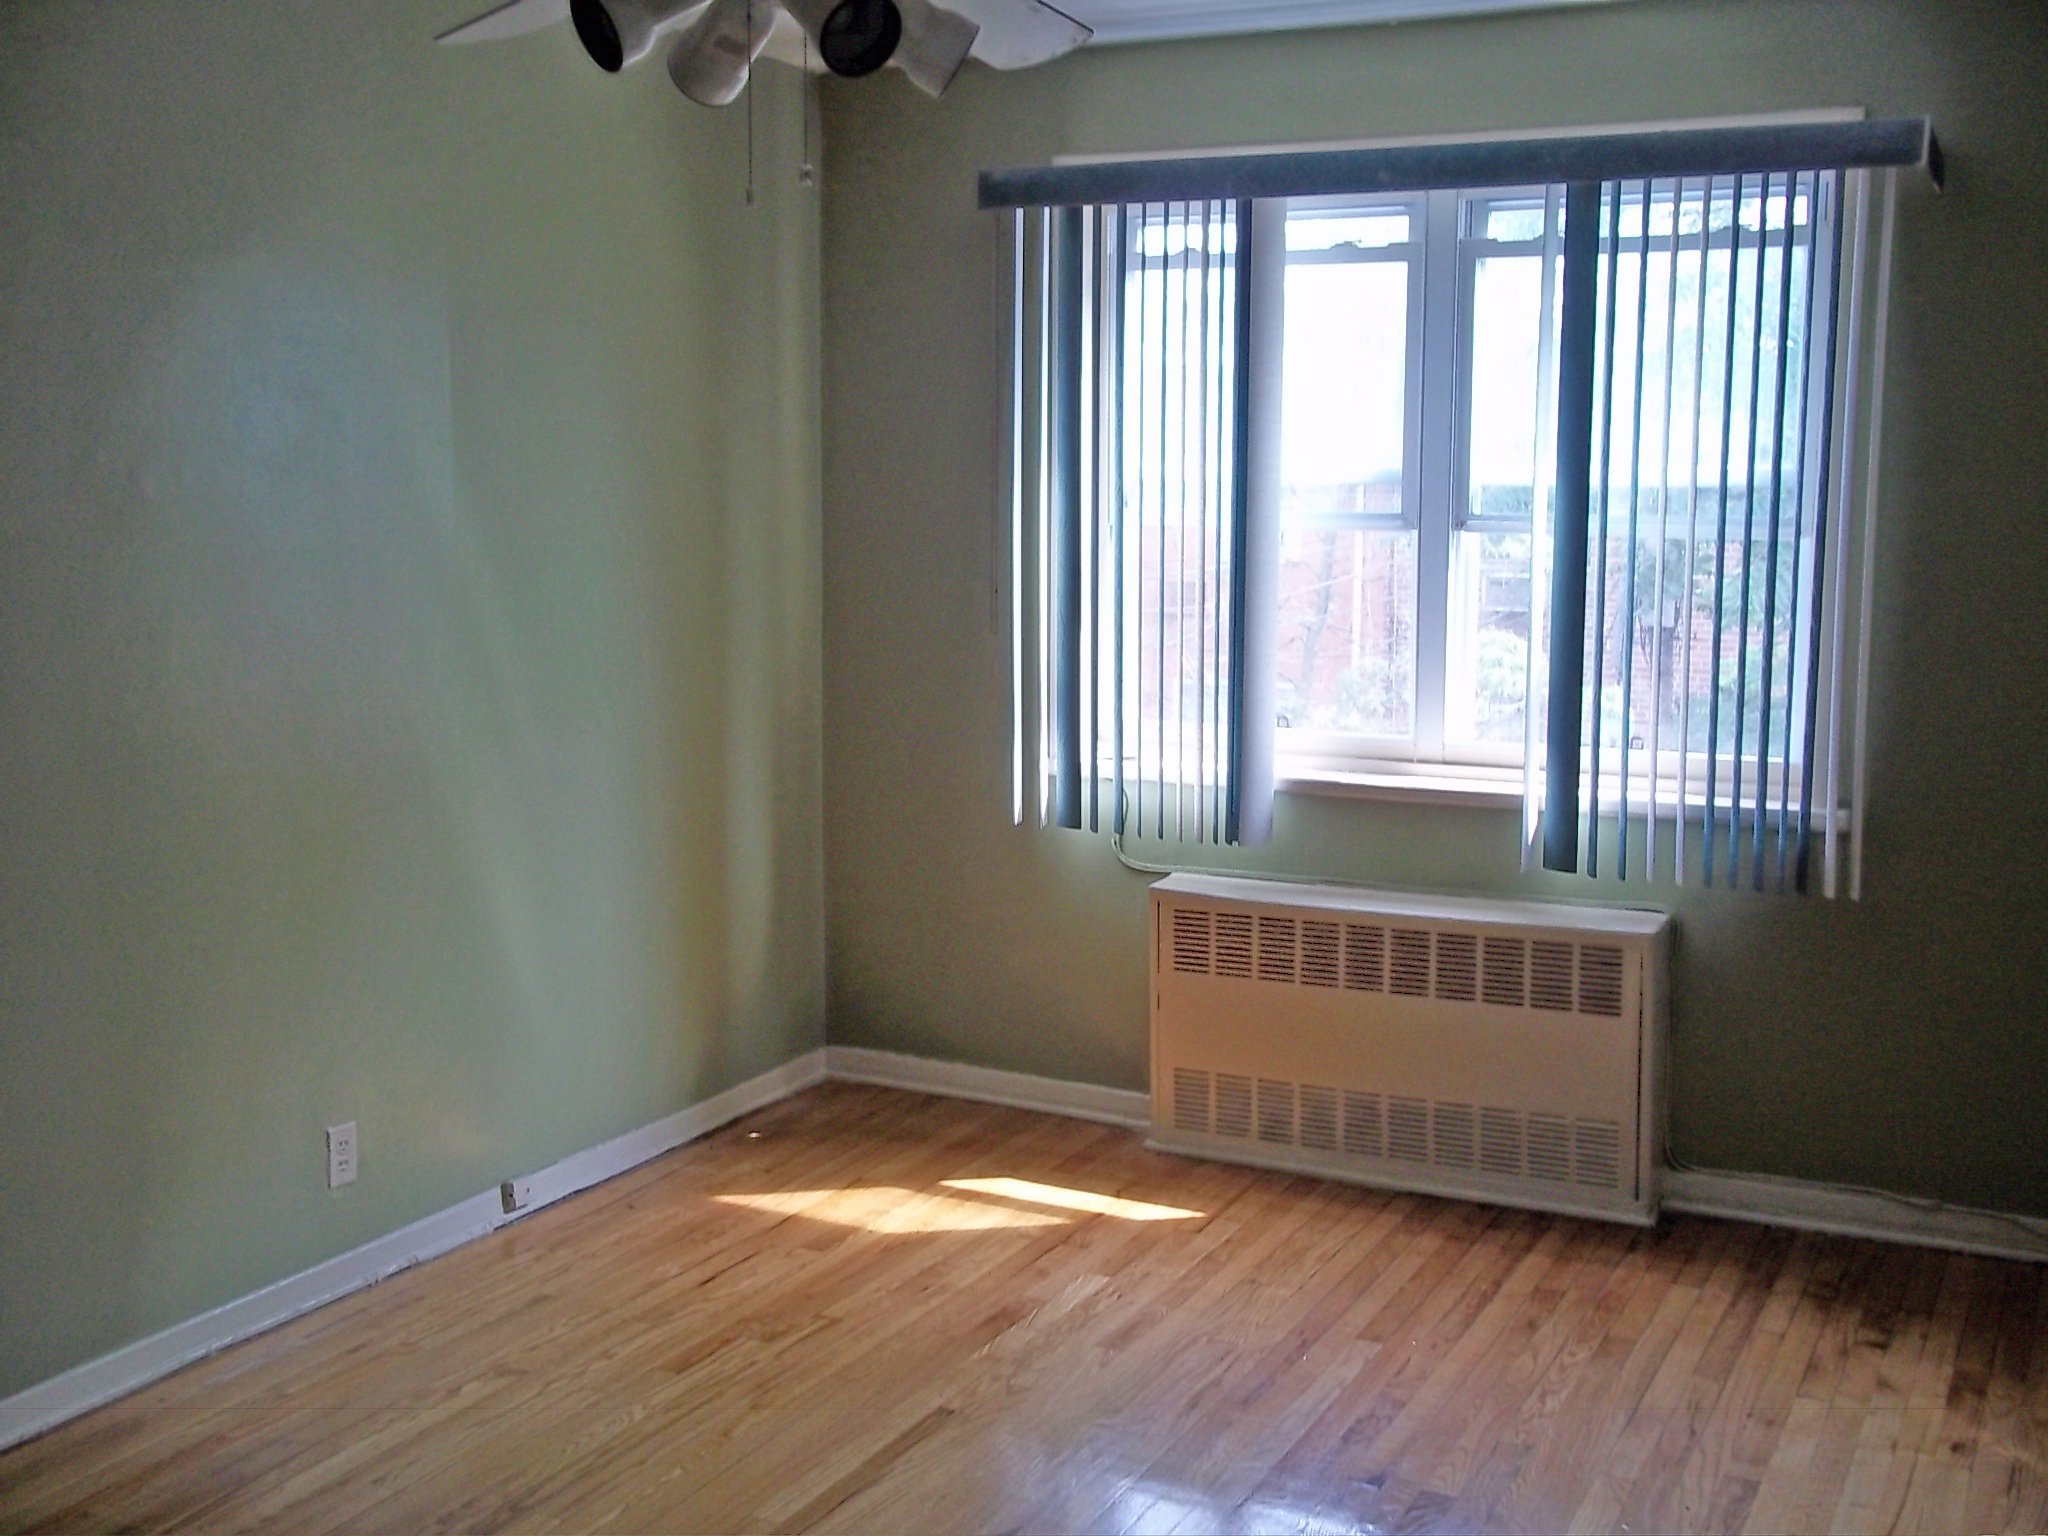 2 Bedroom Canarsie Apartment For Rent Brooklyn Crg3097